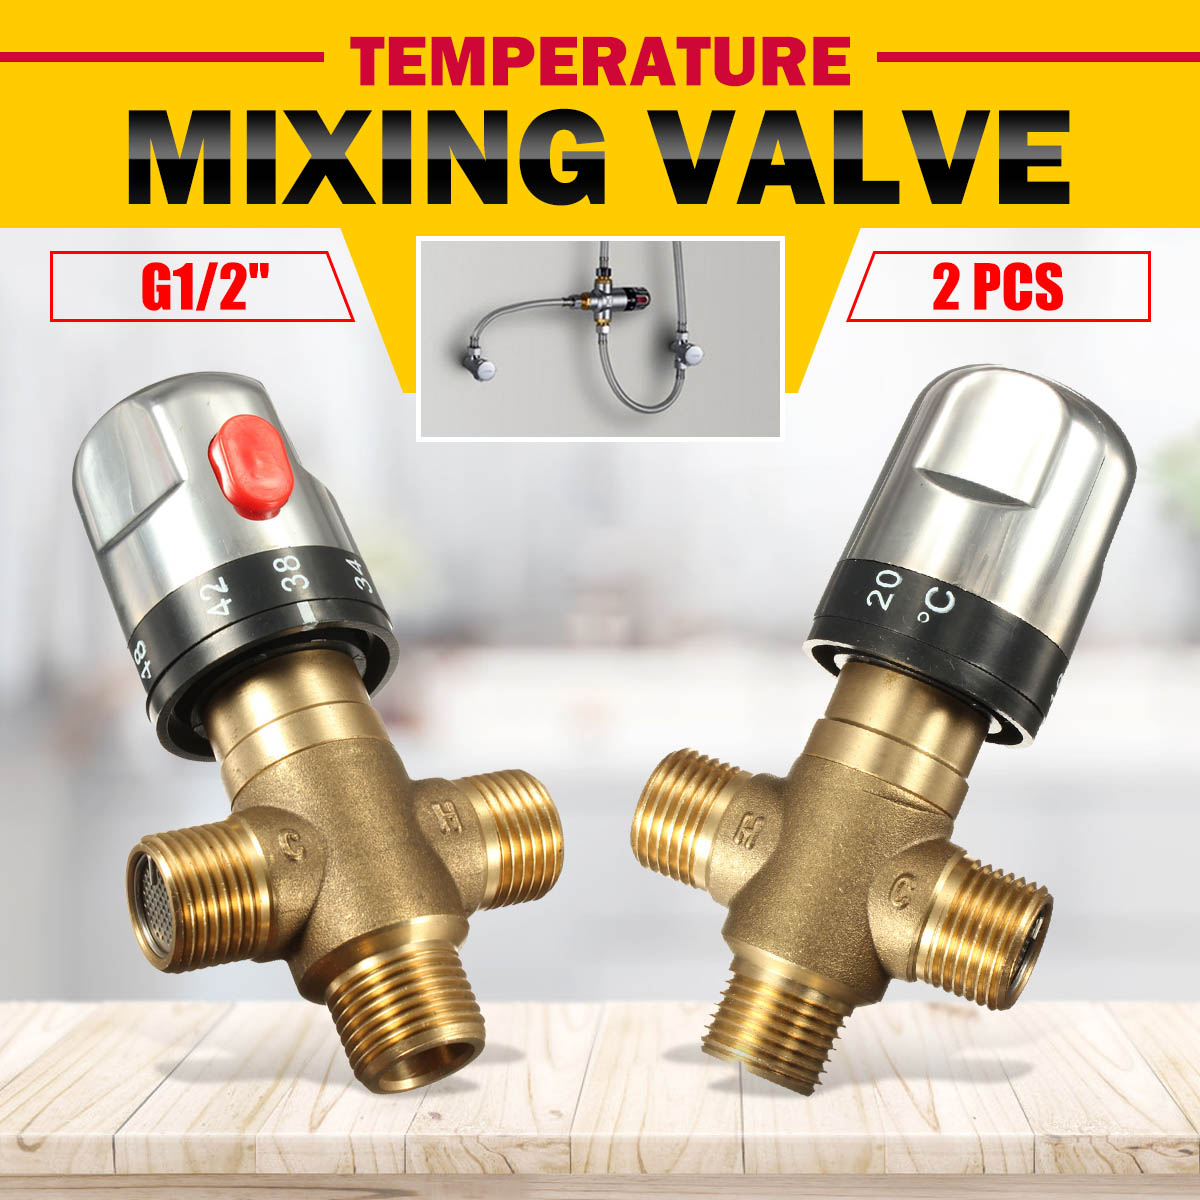 2Pcs Xueqin Brass Thermostatic Mixing Valve Bathroom Faucet Temperature Mixer Control Thermostatic Valve Home Improvement2Pcs Xueqin Brass Thermostatic Mixing Valve Bathroom Faucet Temperature Mixer Control Thermostatic Valve Home Improvement